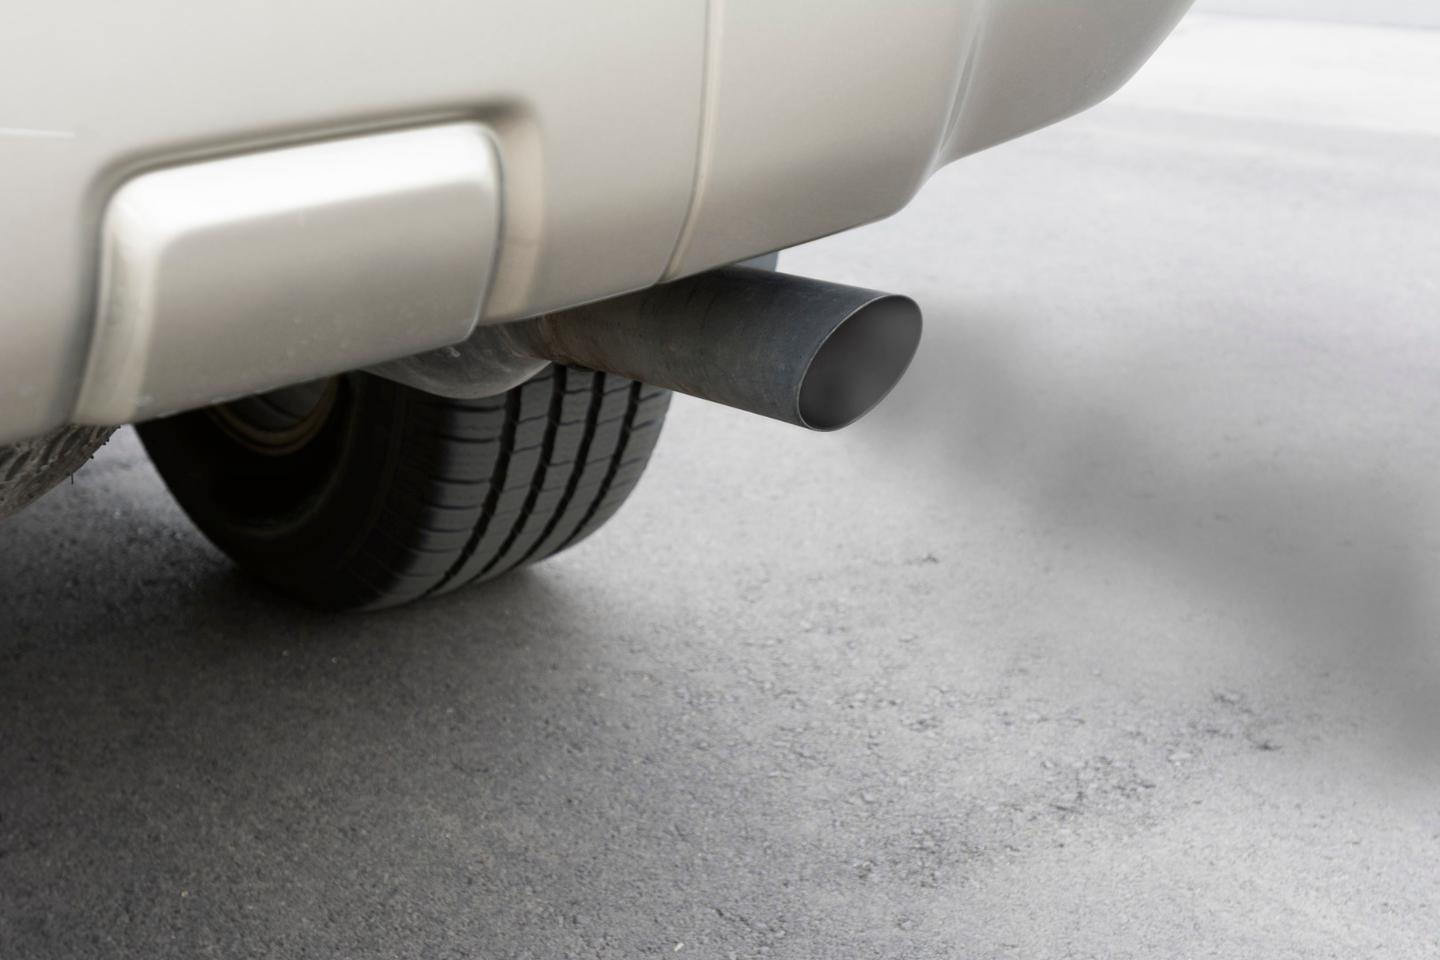 Researchers haveuncovered the code used by Volkswagen tocheat diesel emissions tests